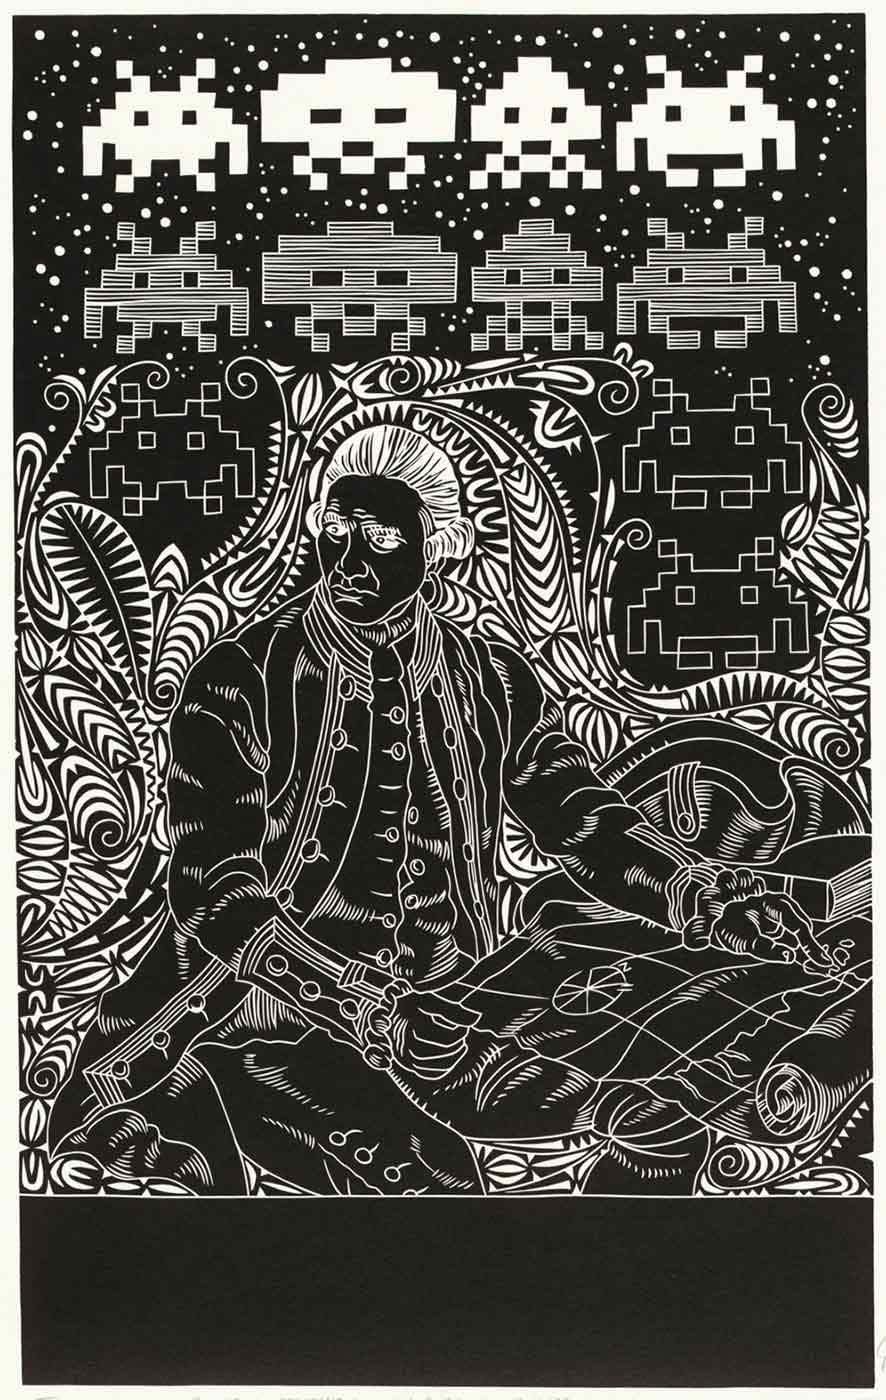 A black and white linocut featuring an image of a man seated and holding a map. The man is surrounded by organic motifs from the Torres Strait. The background comprises rows of Space Invaders, a 1980's popular computer game motif.